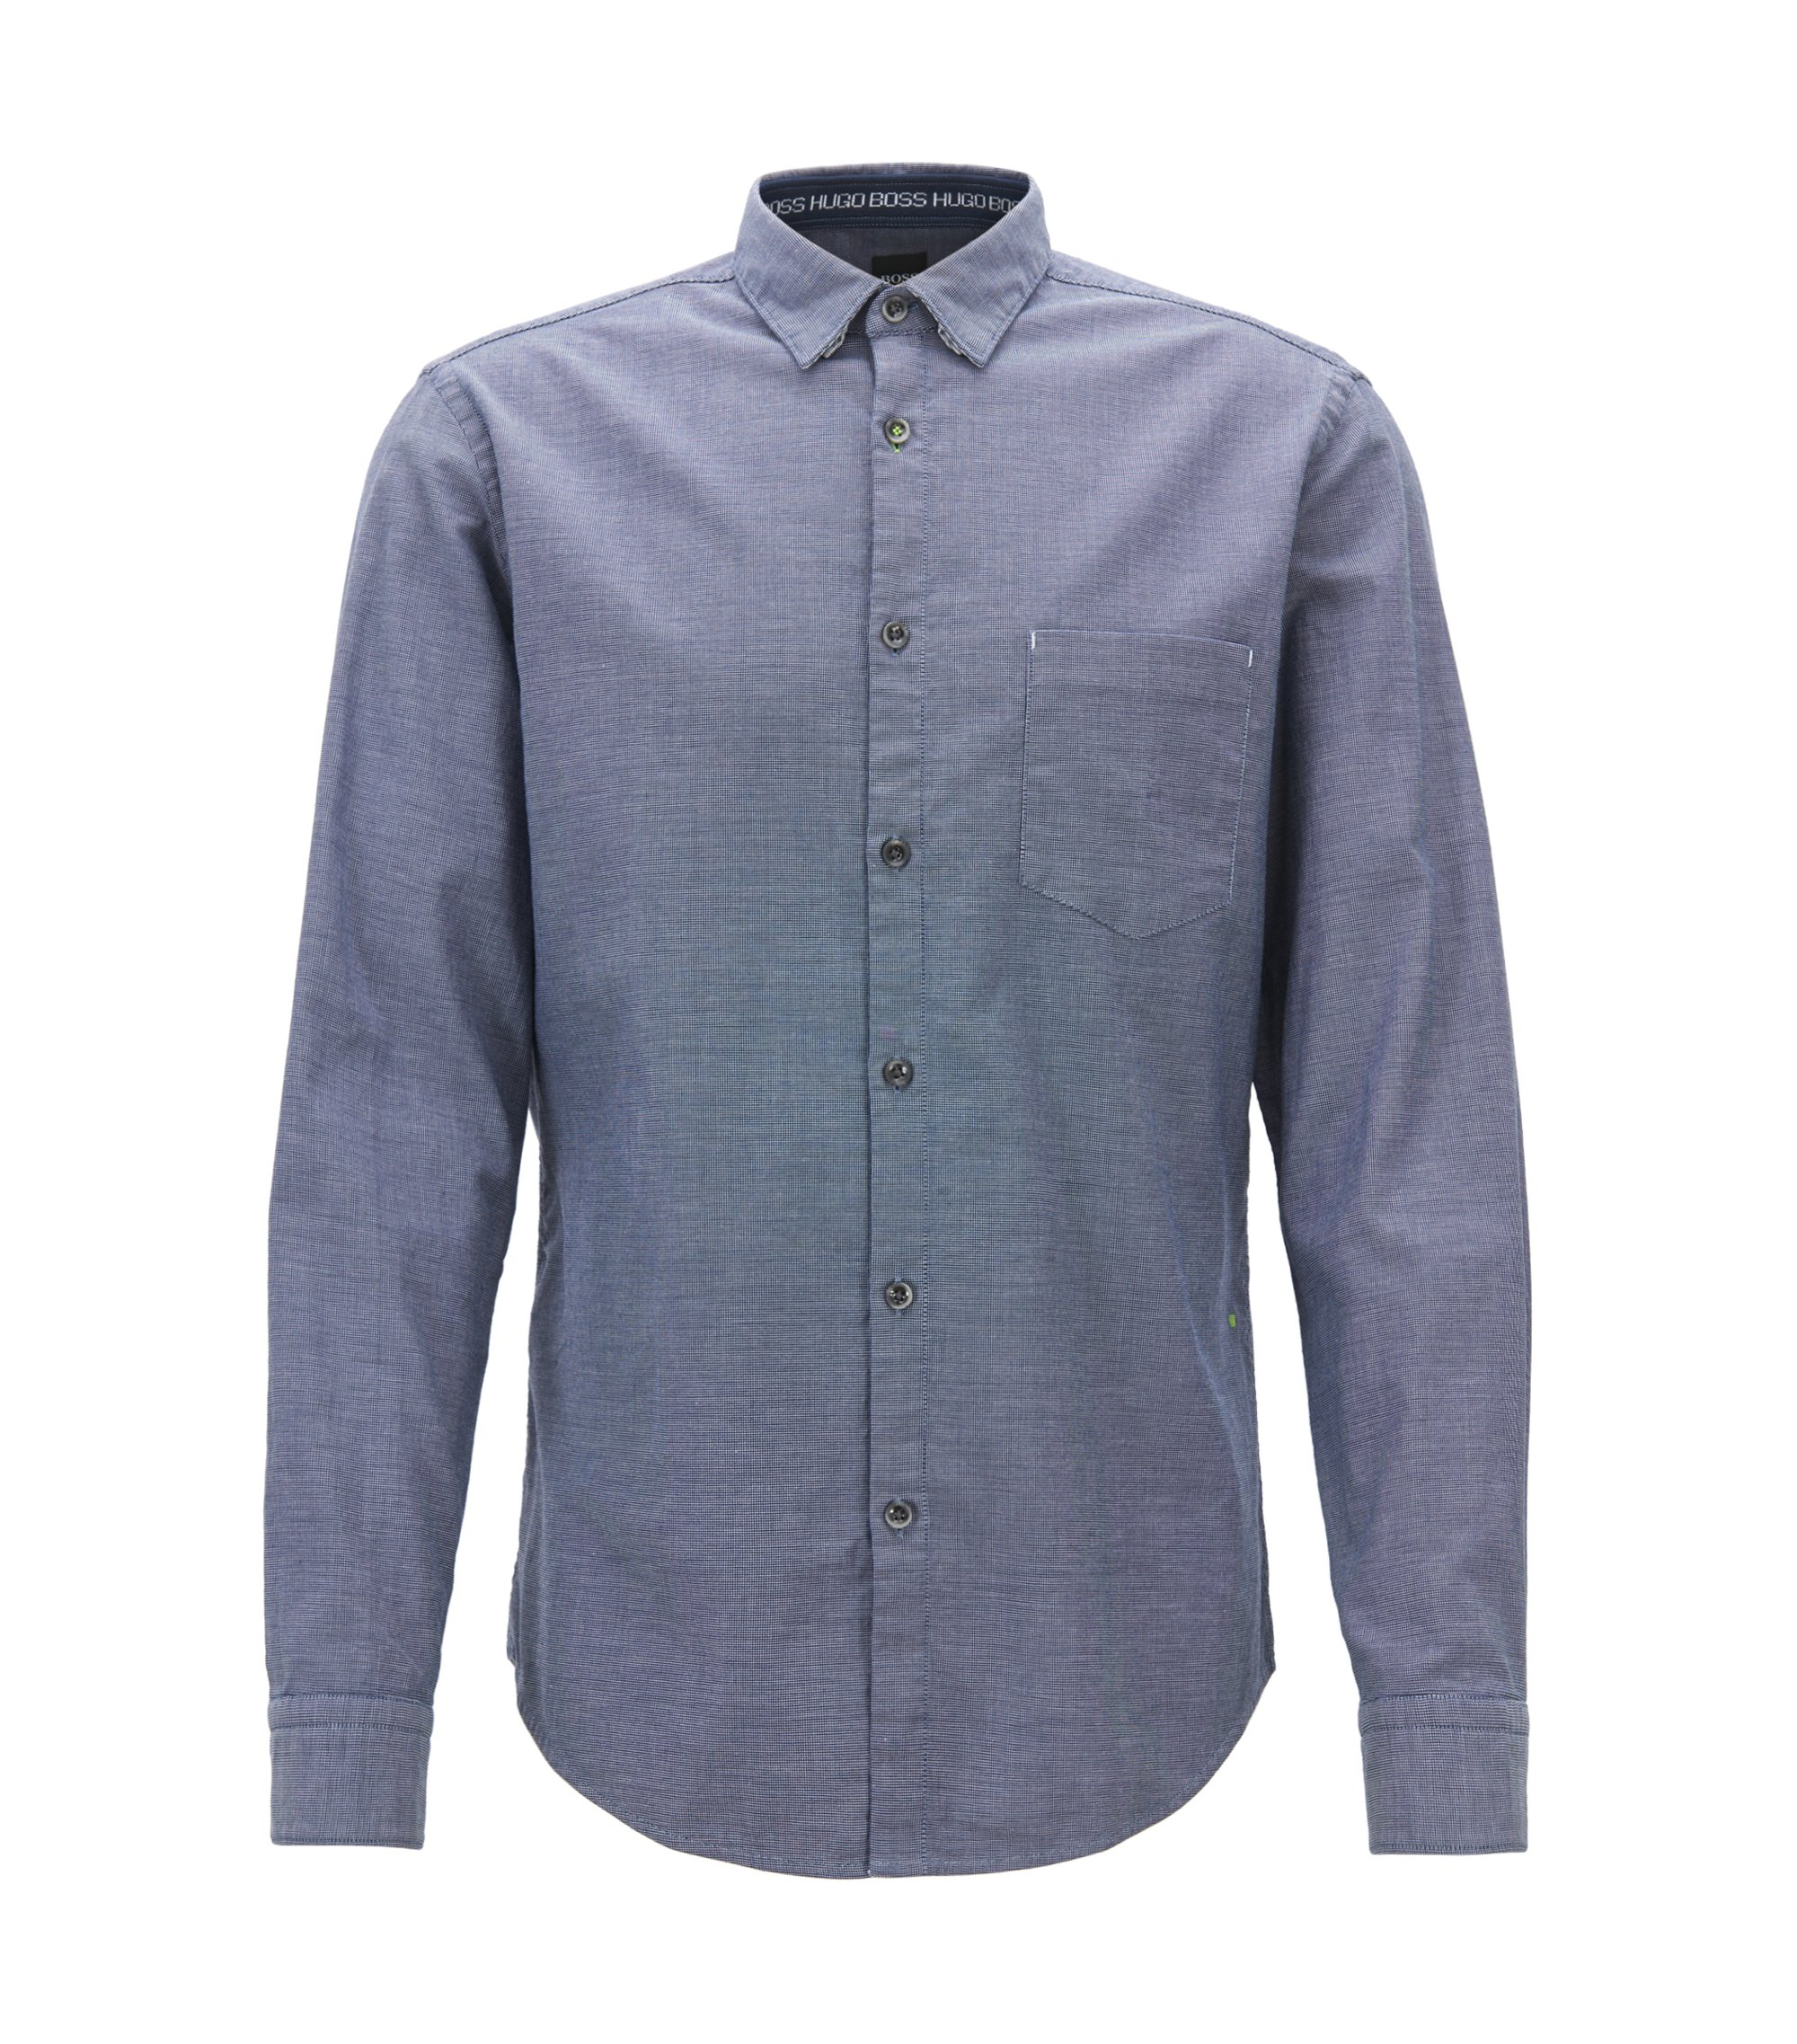 Camicia regular fit in cotone oxford elasticizzato sale e pepe, Blu scuro